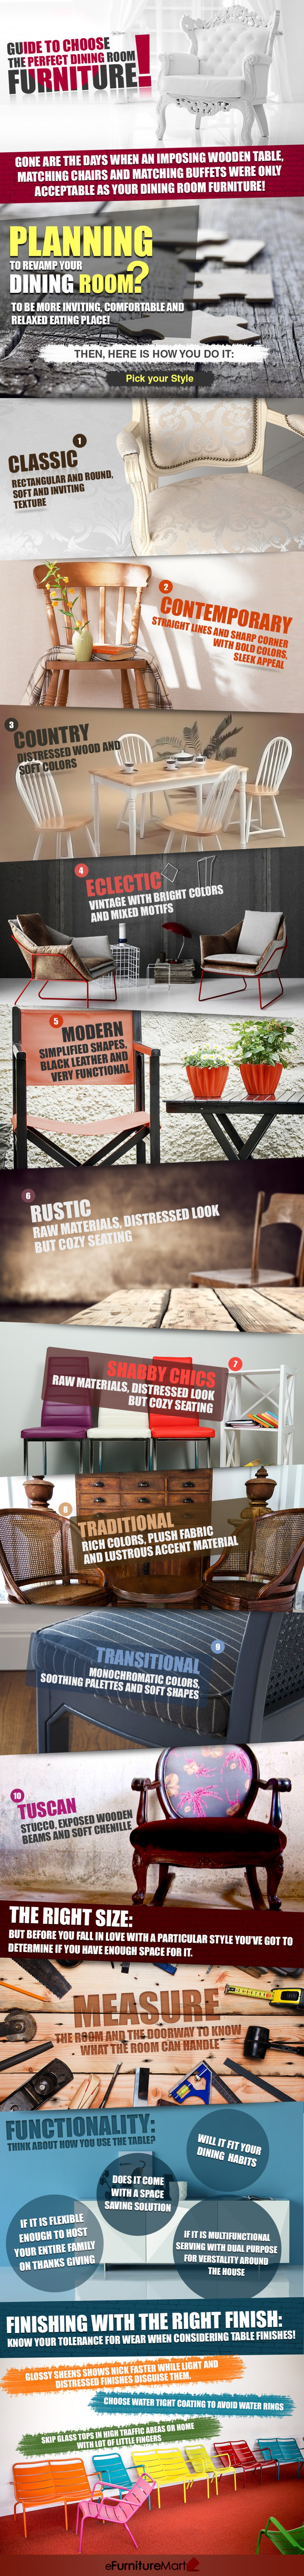 Guide to choose the Perfect Dining Room Furniture Infographic